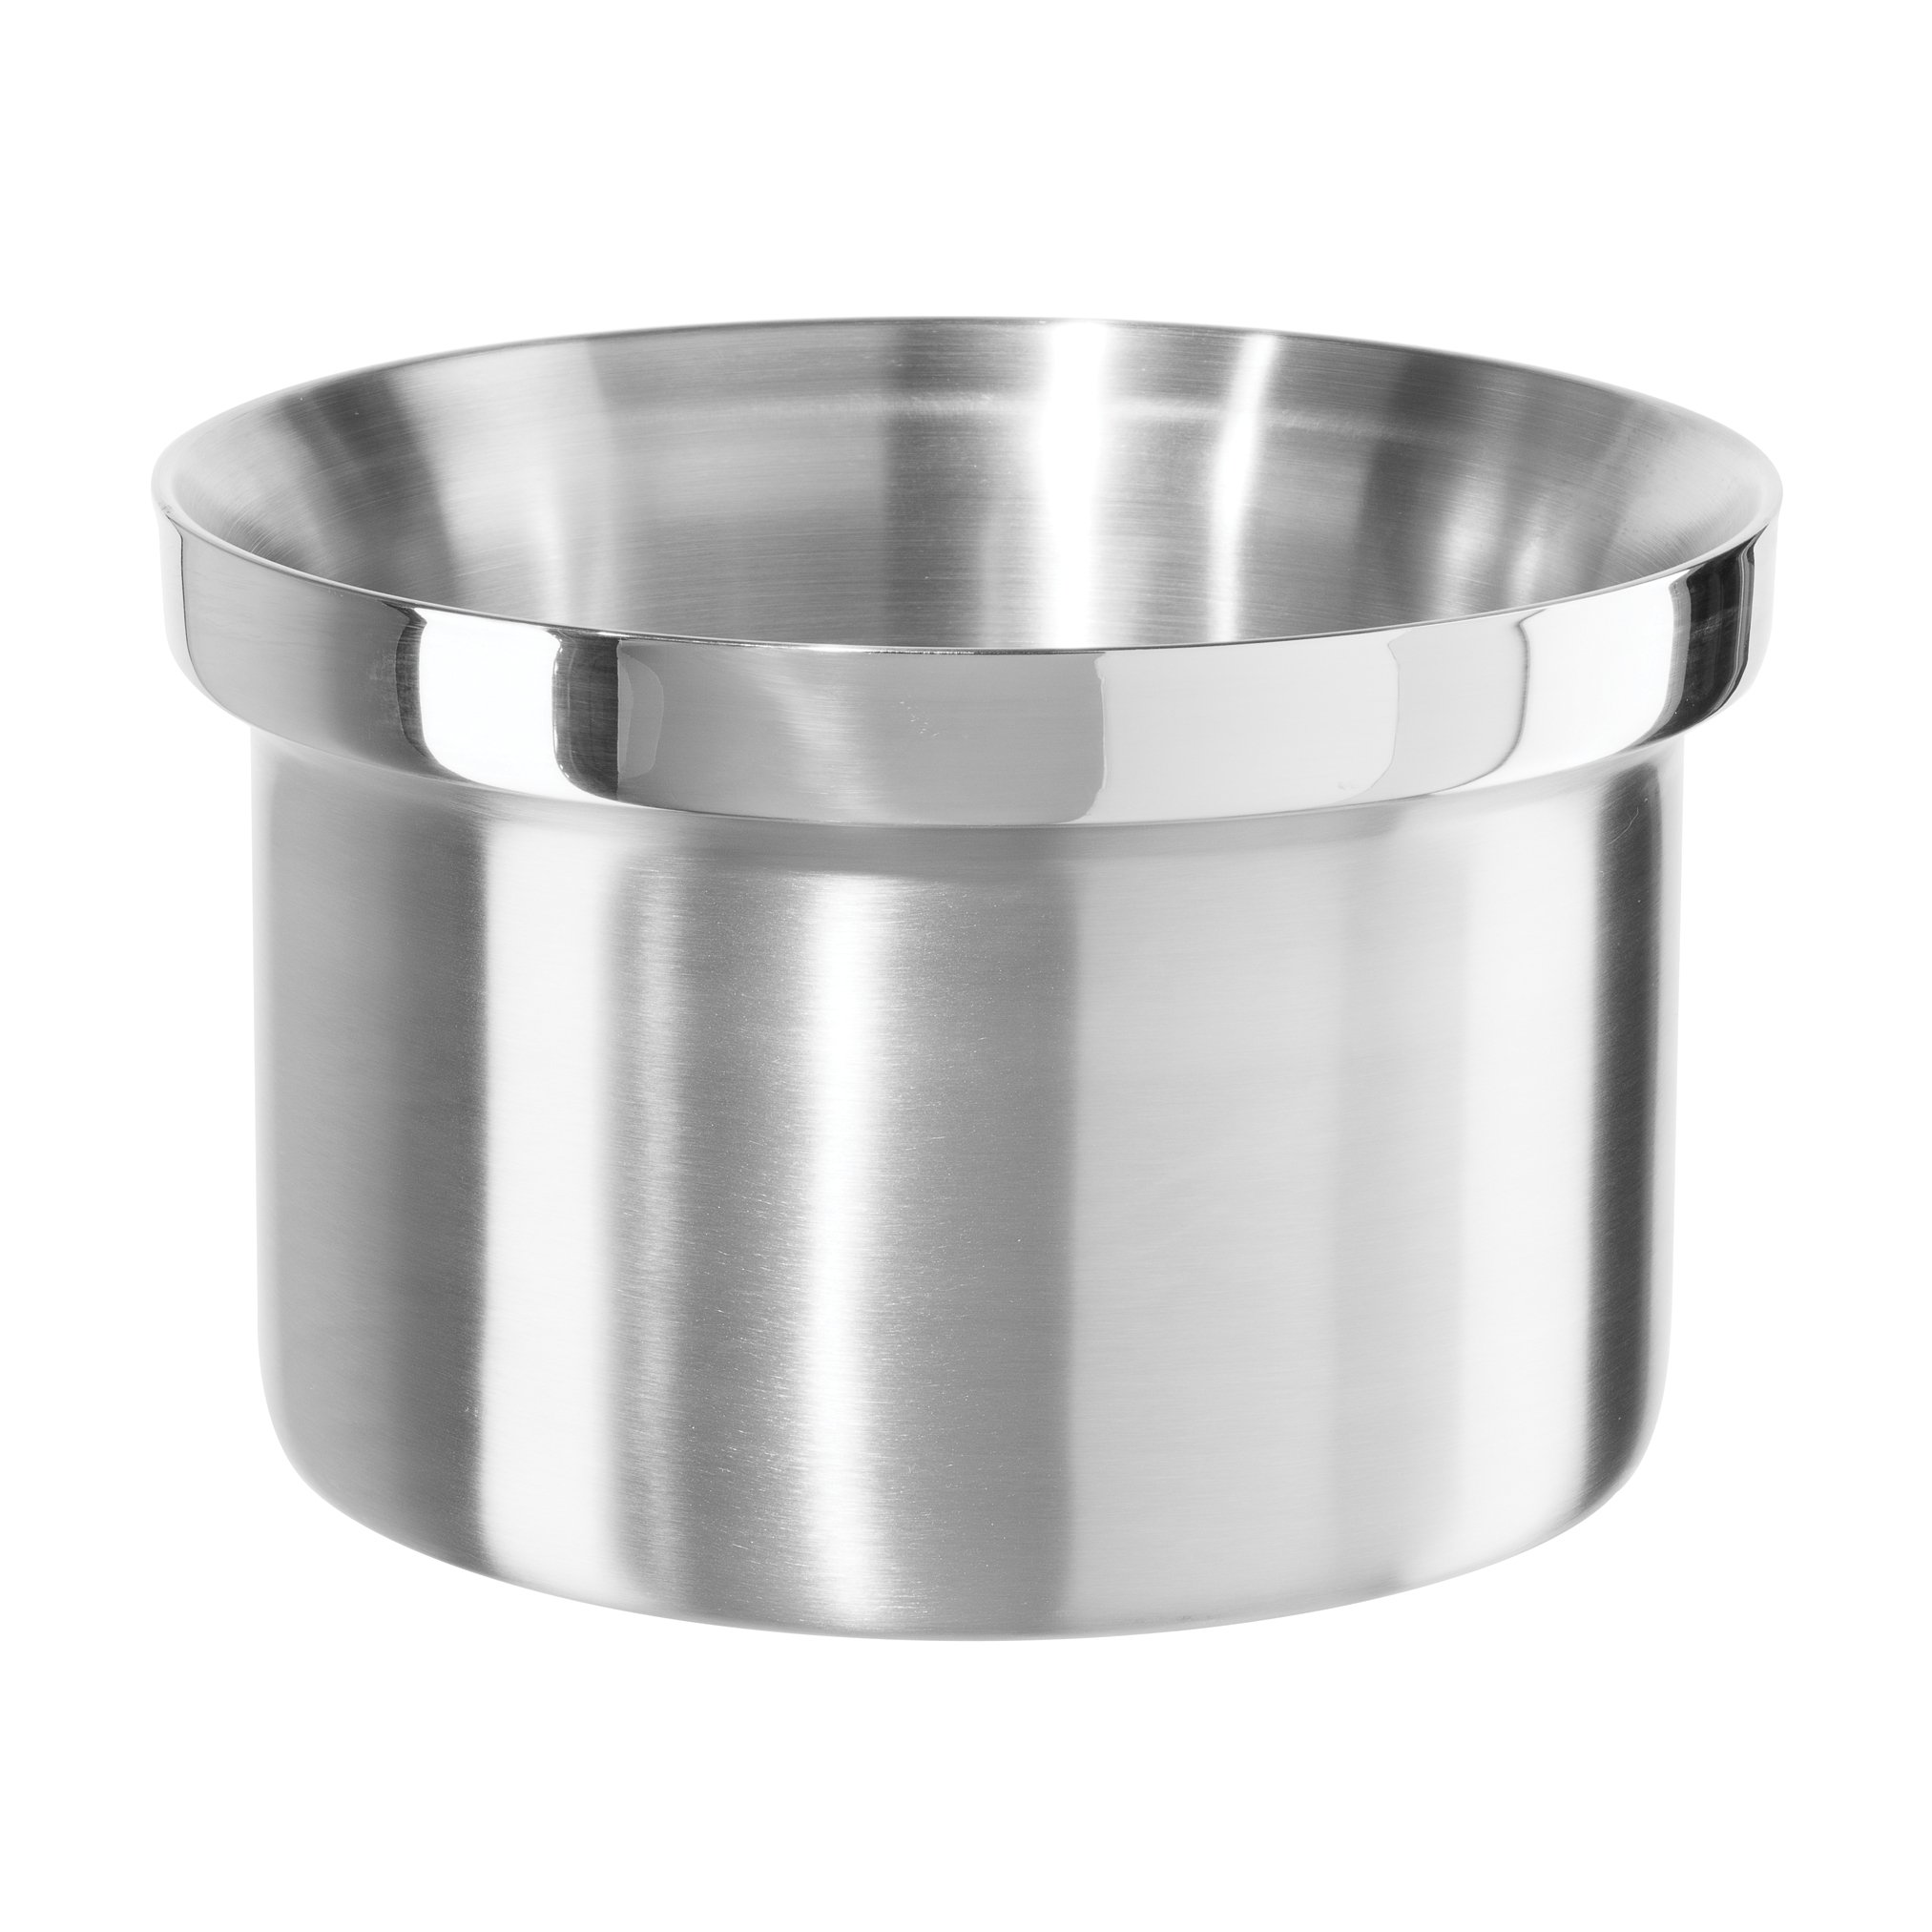 Oggi 7447 Party Tub Steel, Stainless